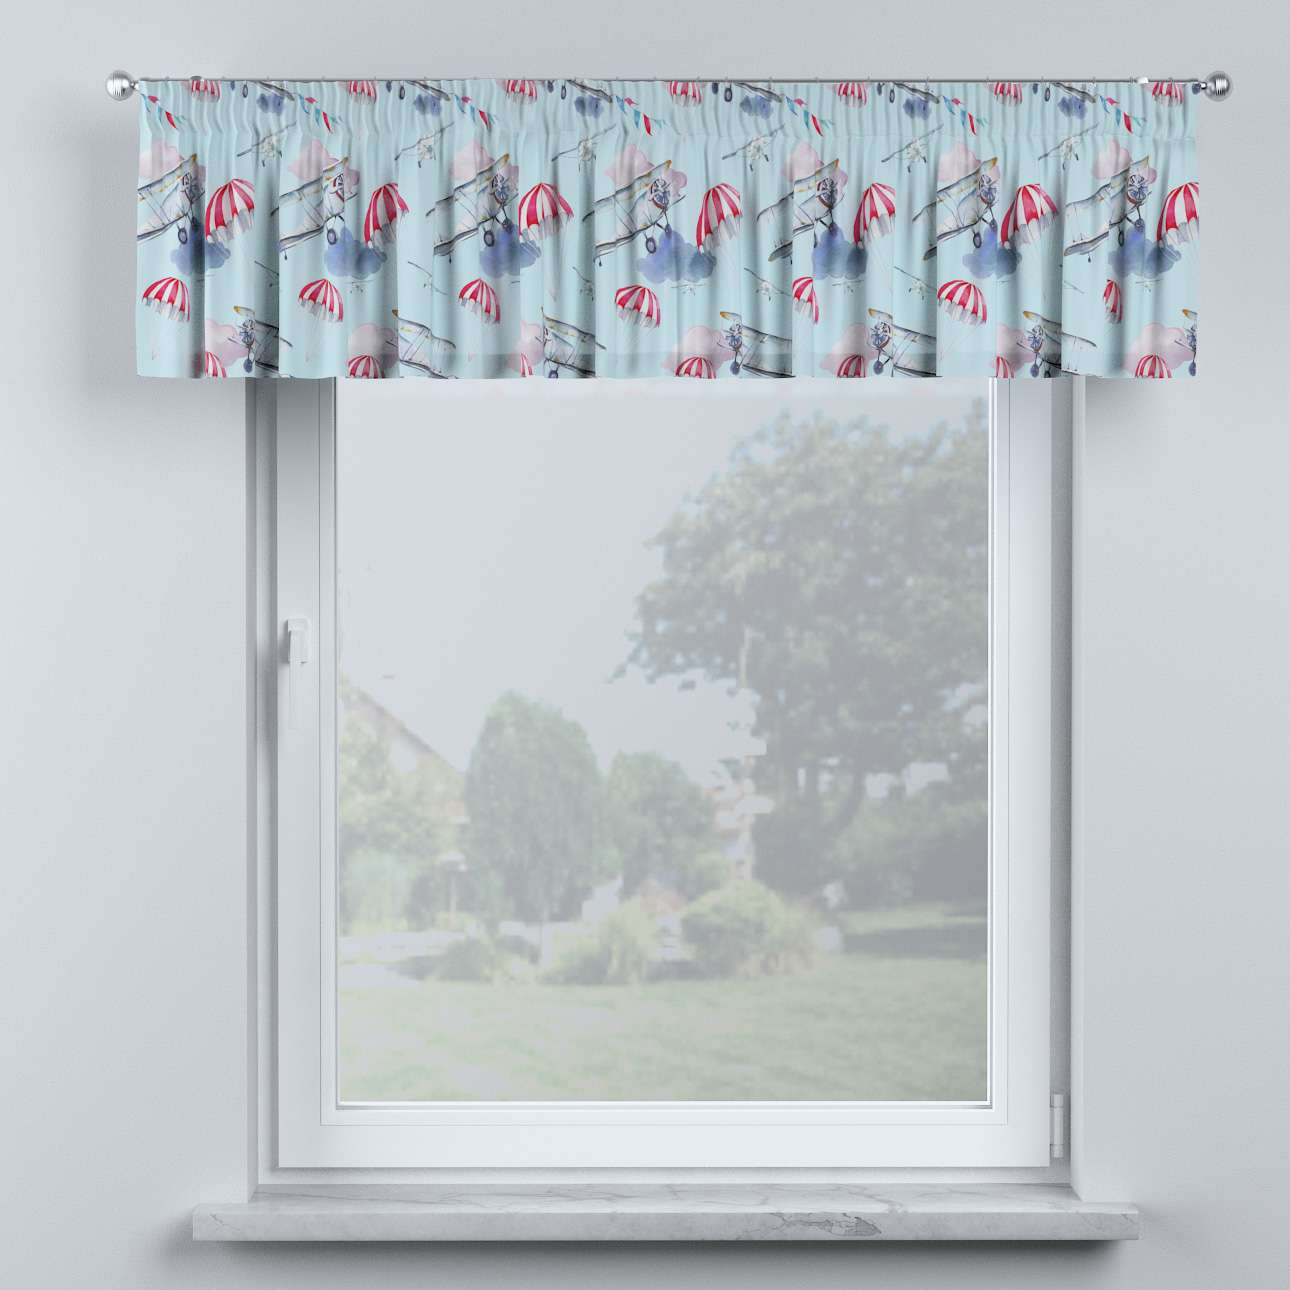 Lambrequin with gathering tape in collection Magic Collection, fabric: 500-10